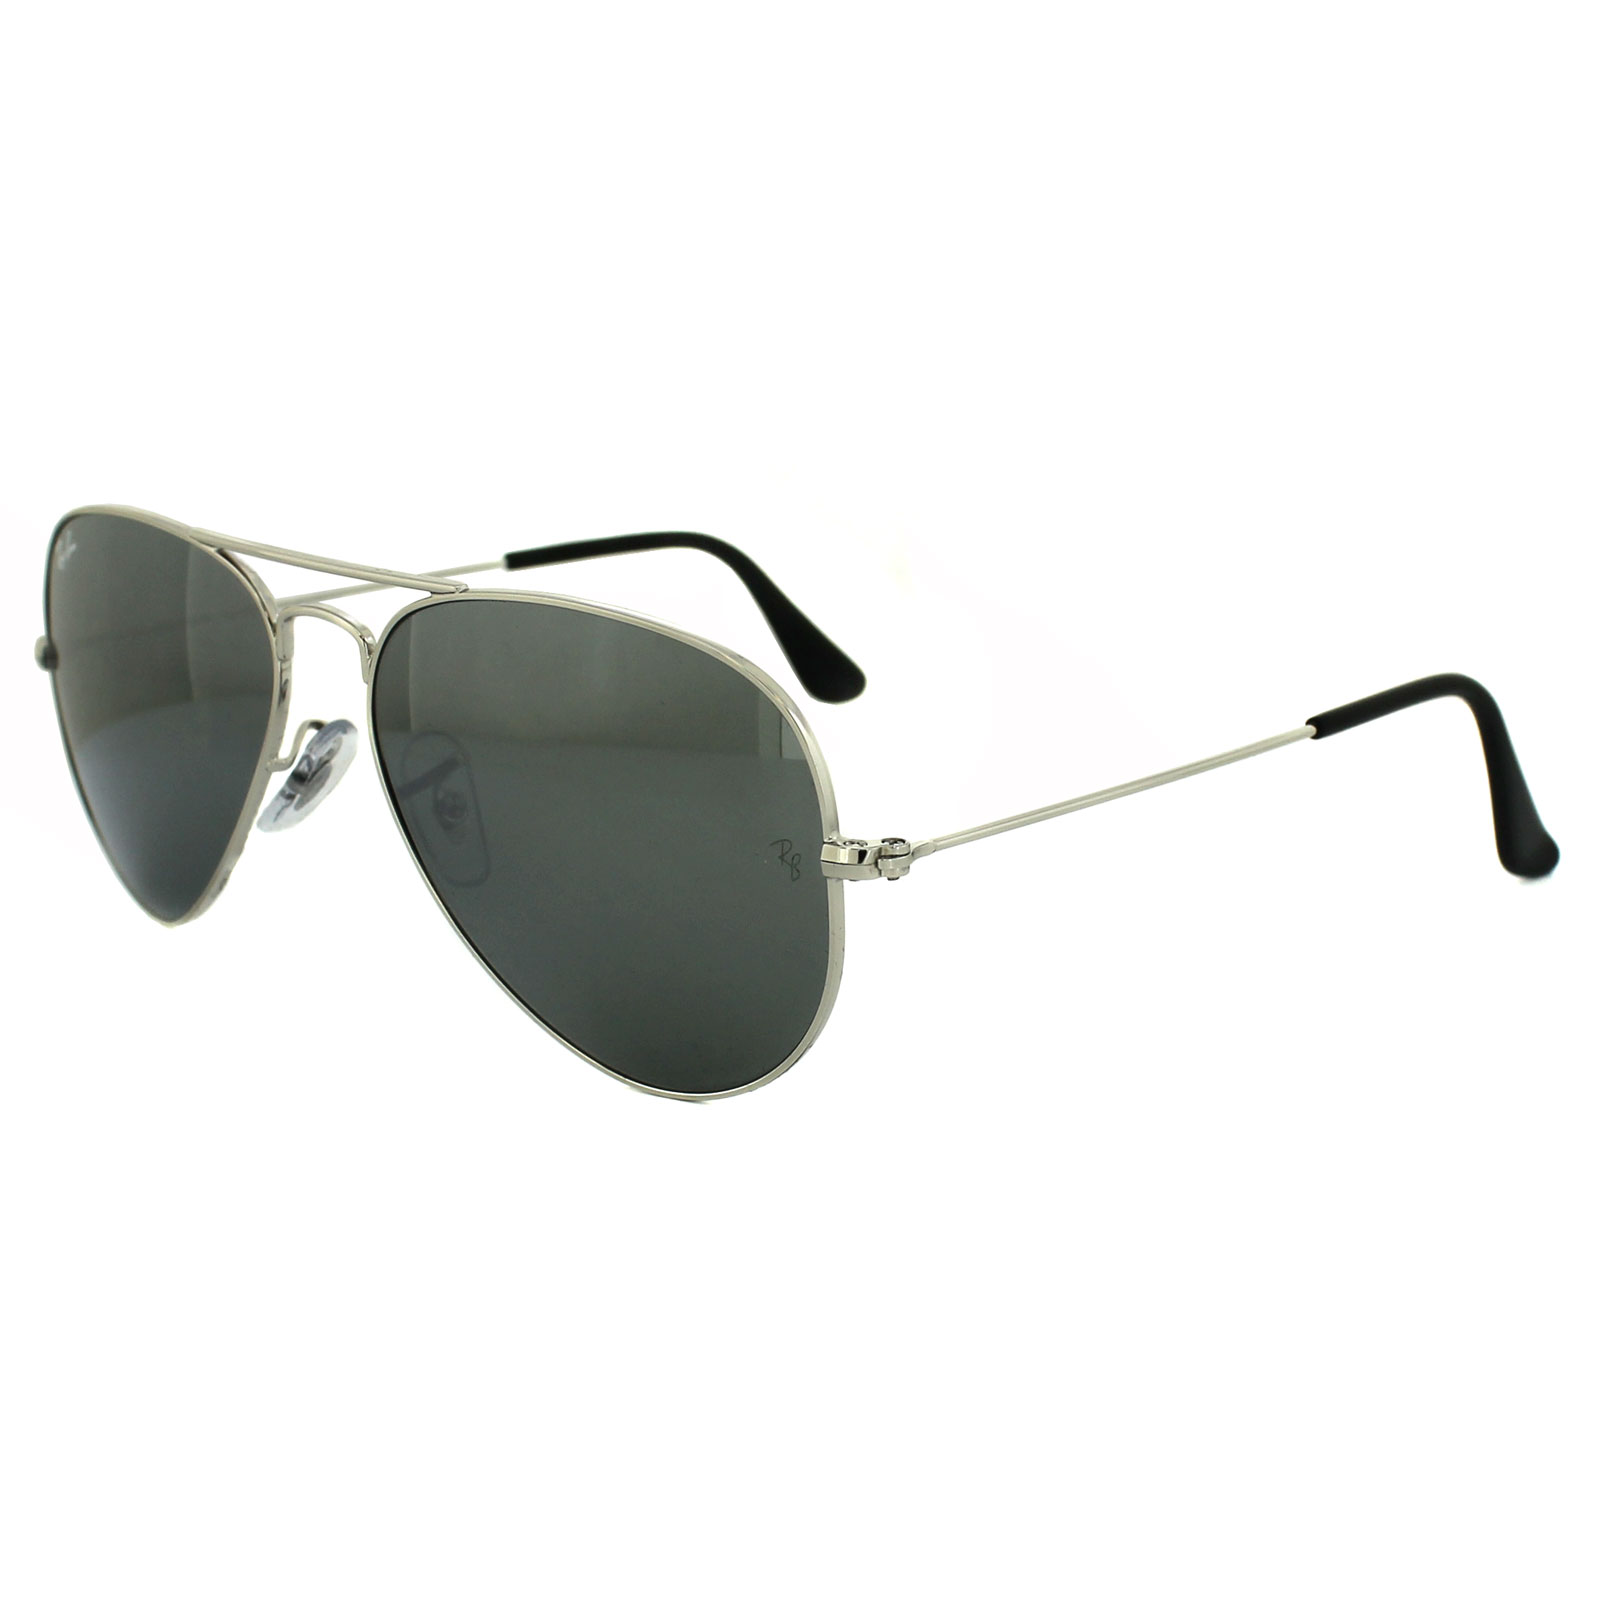 aviator ray ban sunglasses price